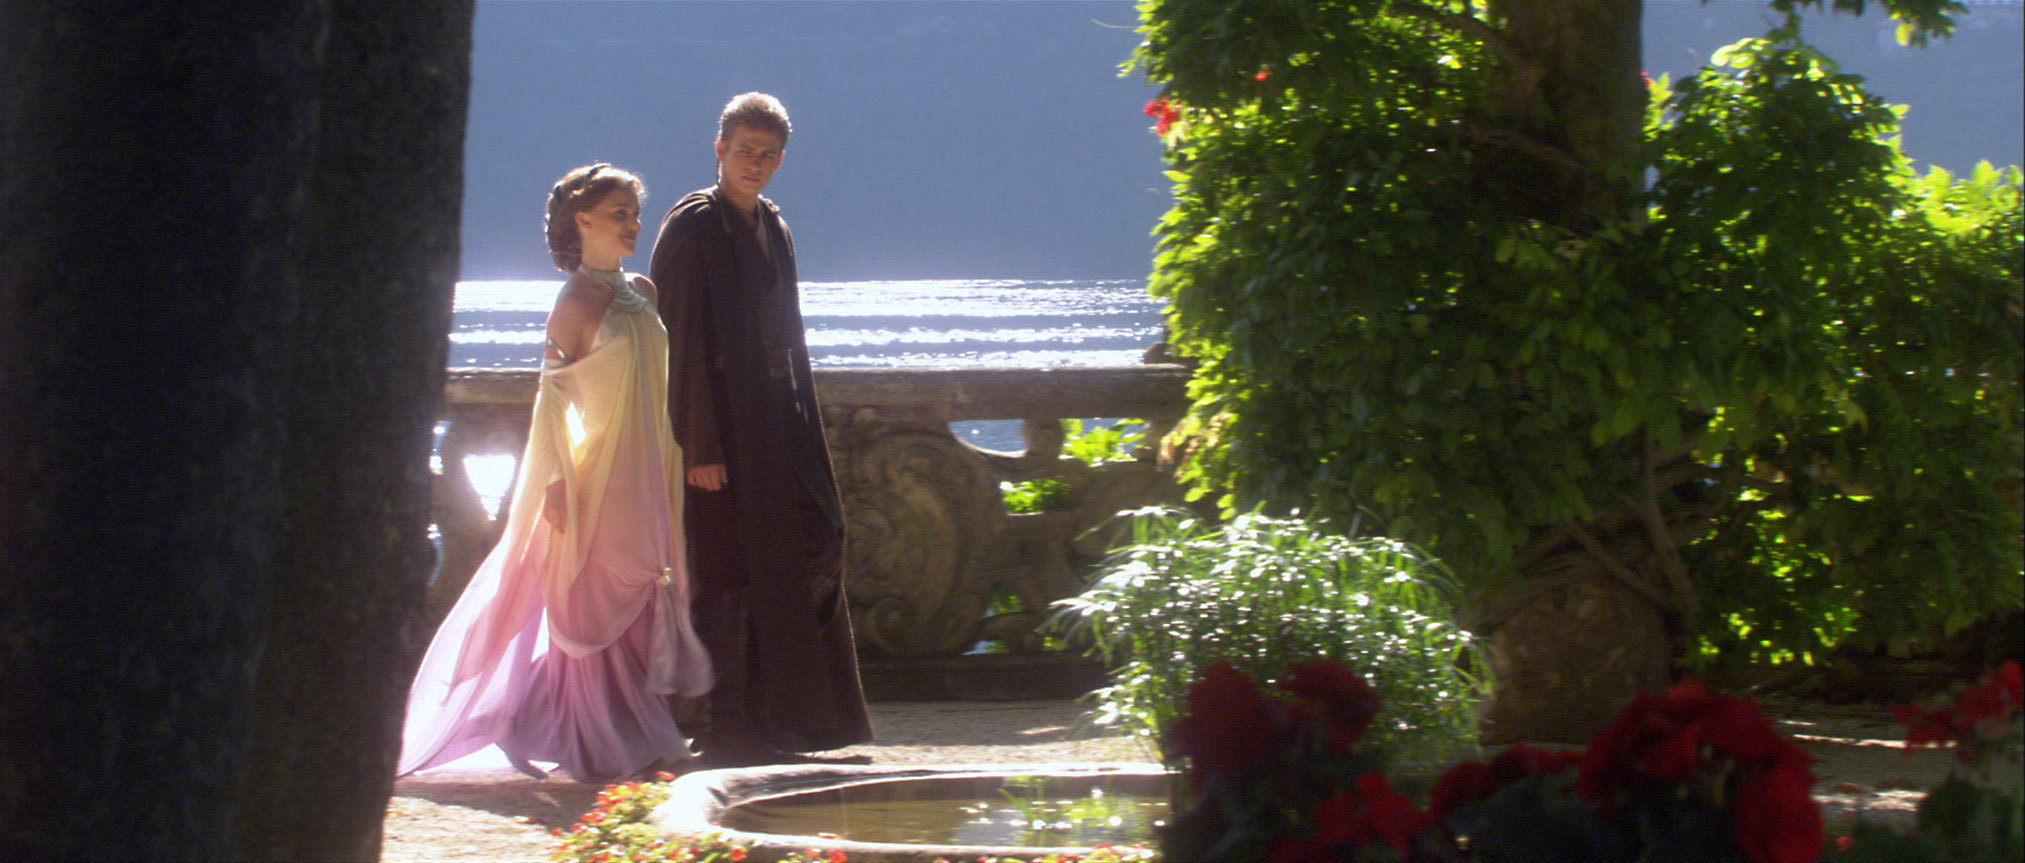 Anakin skywalker and padme amidala episode 3